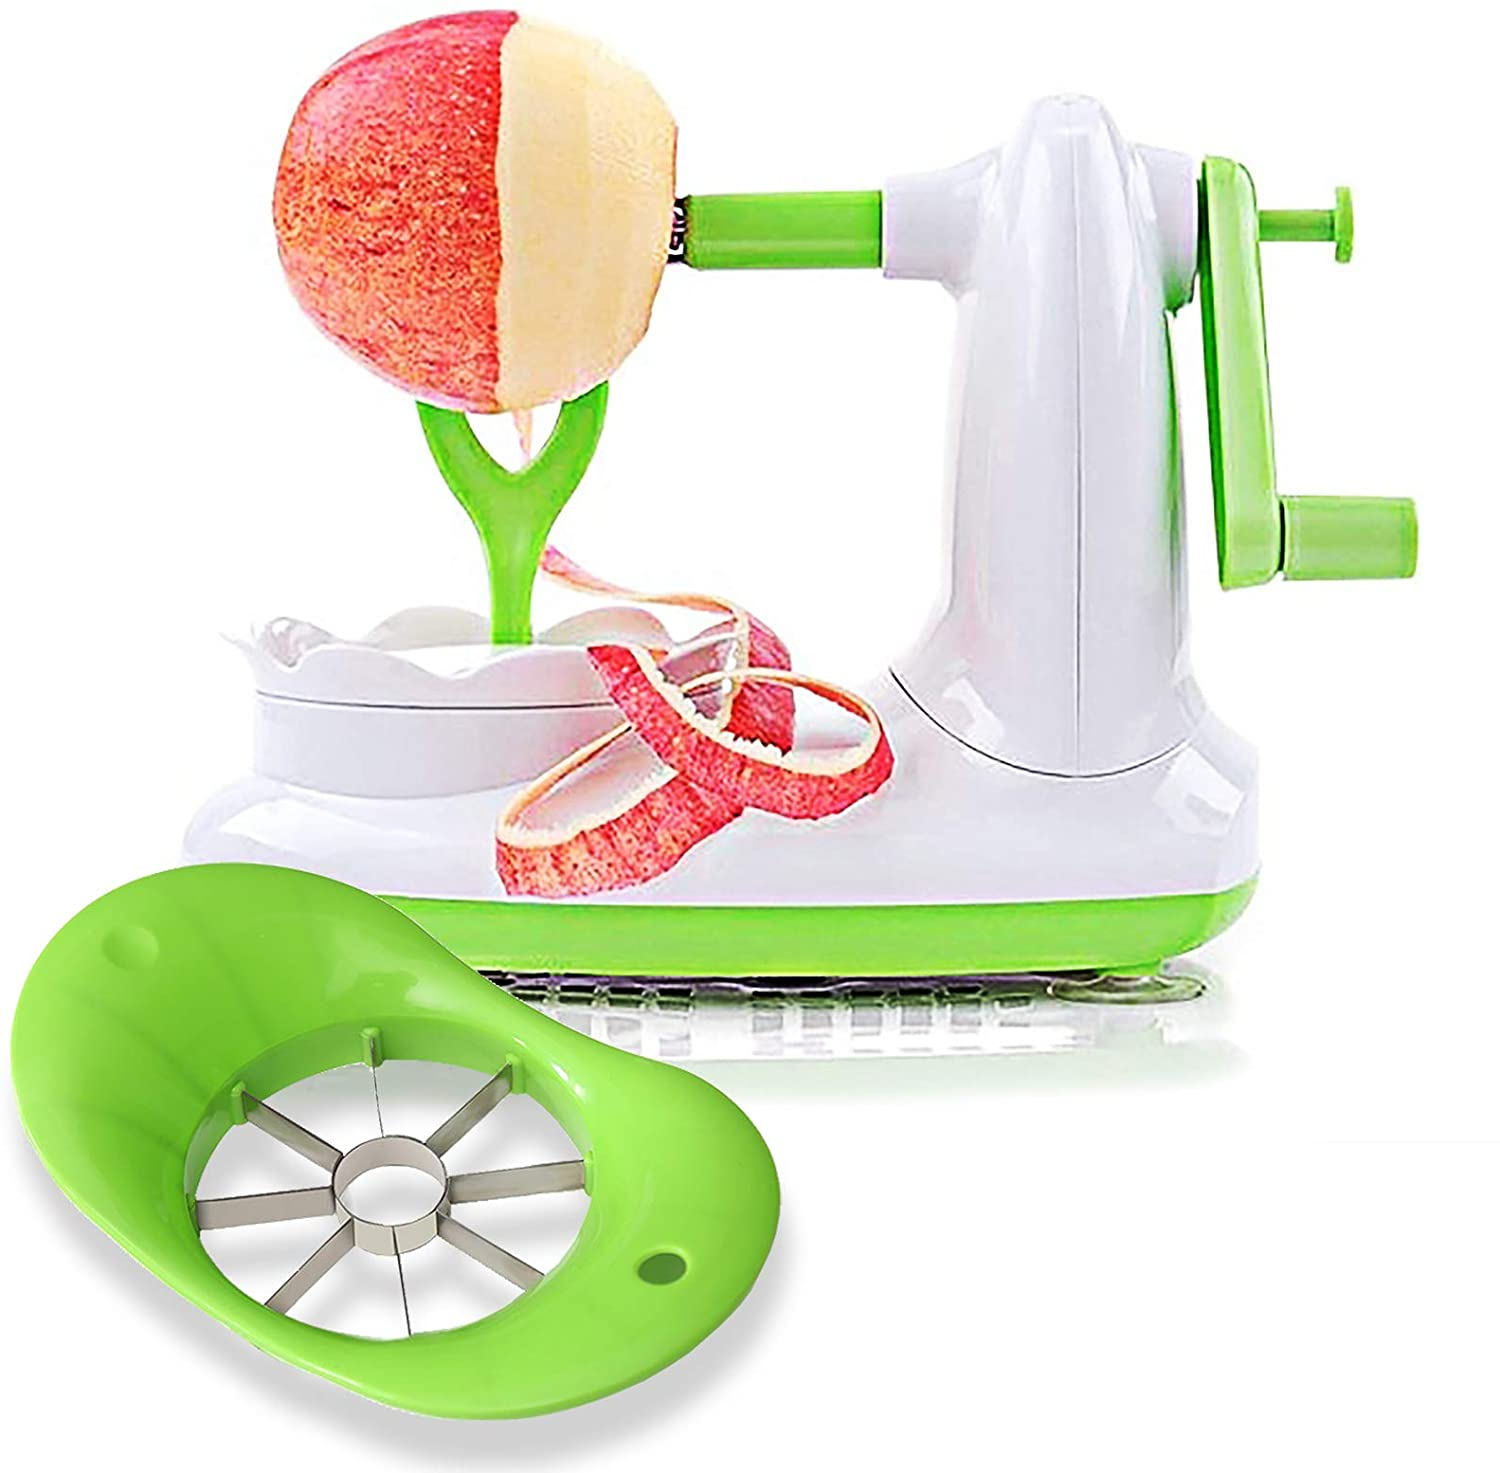 EZMO Apple Peeler, Pear Peeler with 8 Wedges Apple Slicer and Corer, Stainless Steel Blades